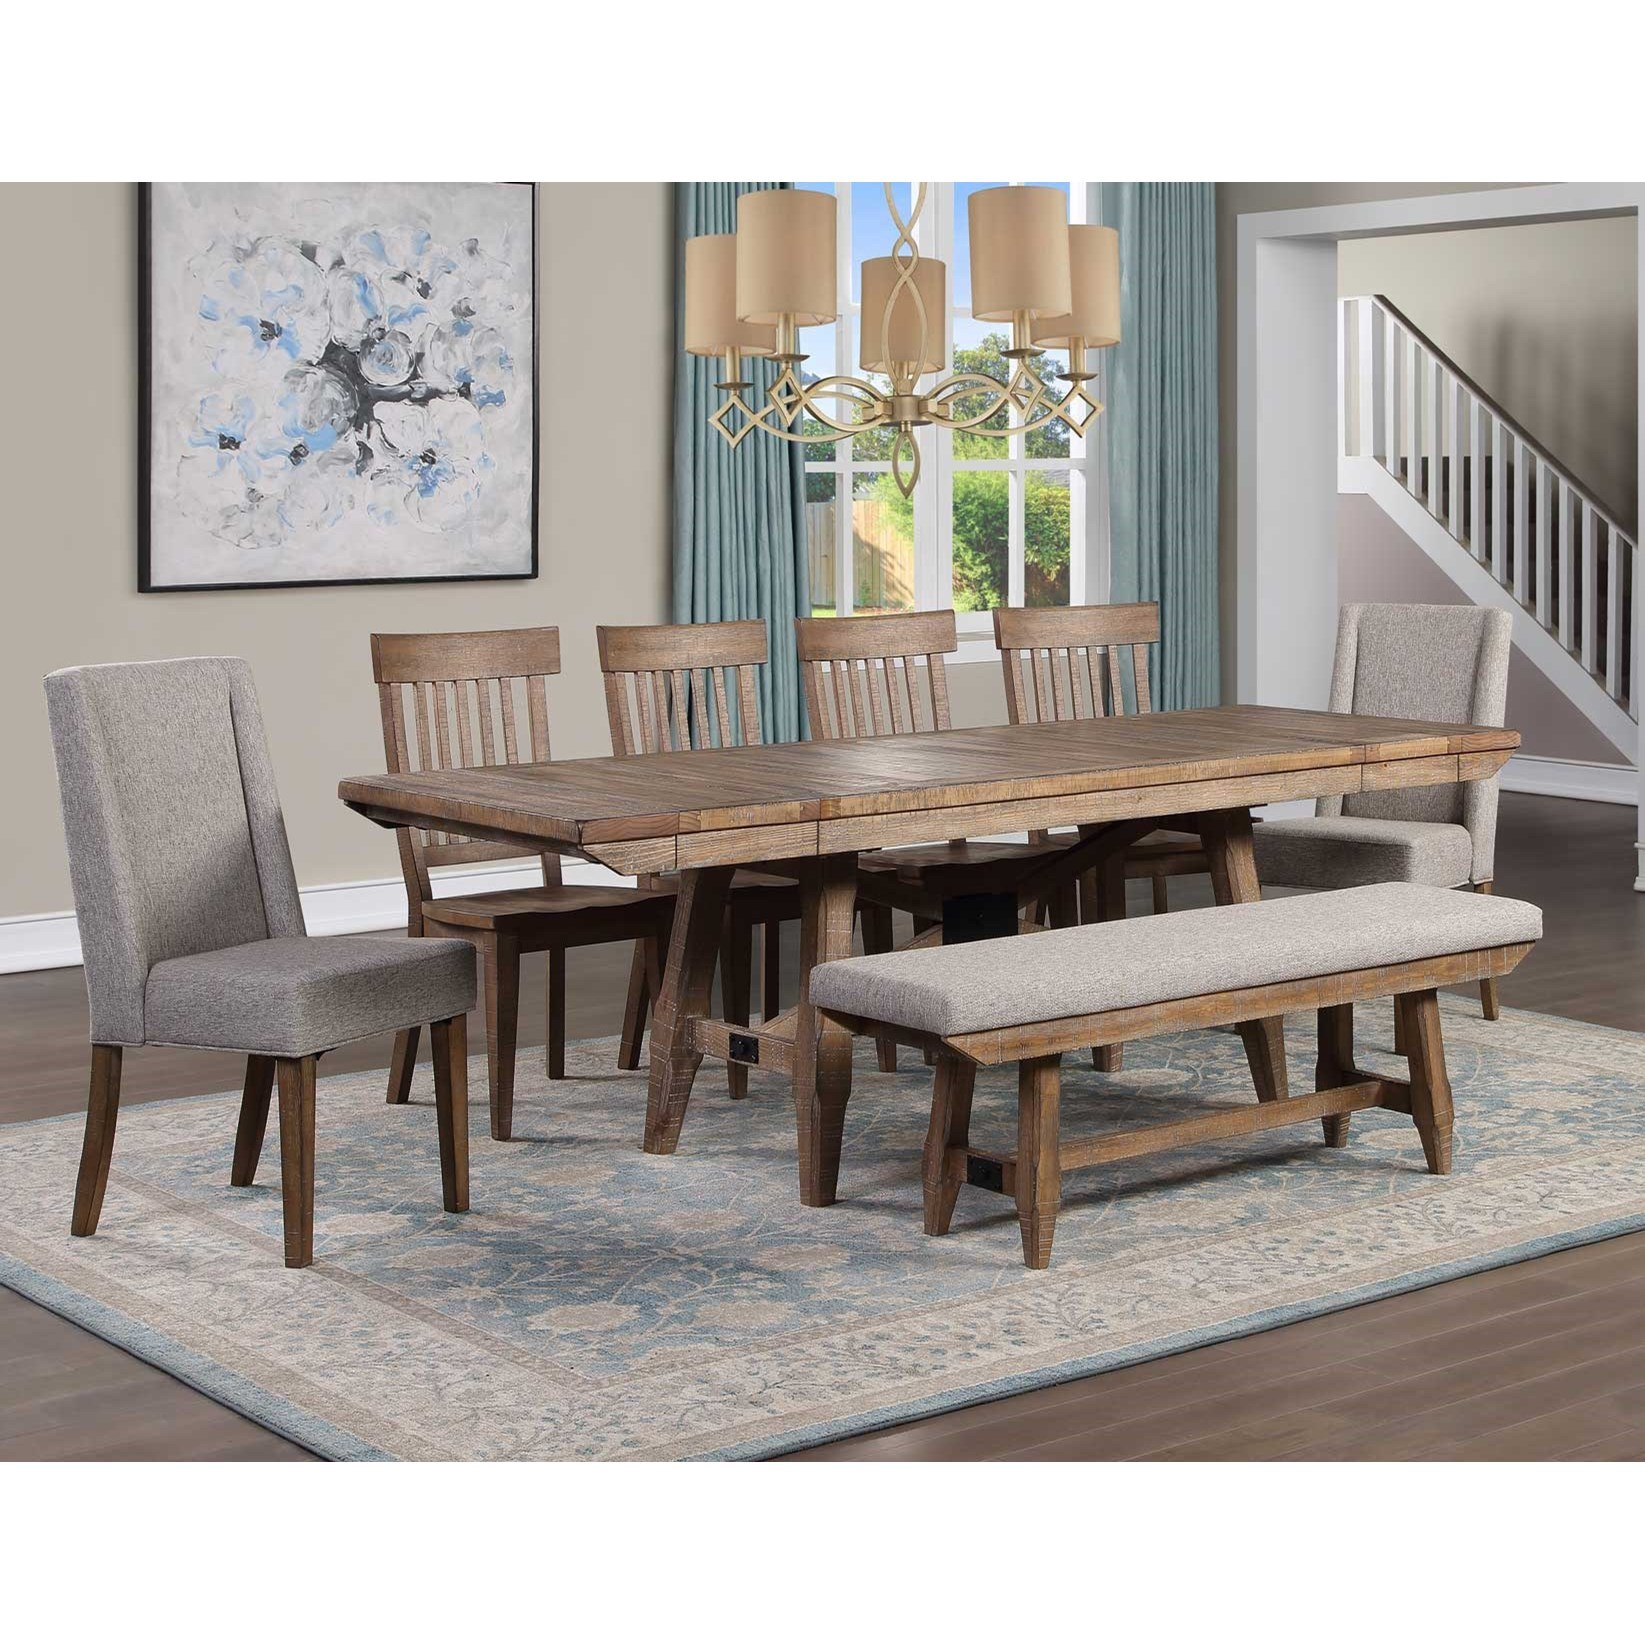 Riverdale 8-Piece Dining Table Set by Steve Silver at Walker's Furniture